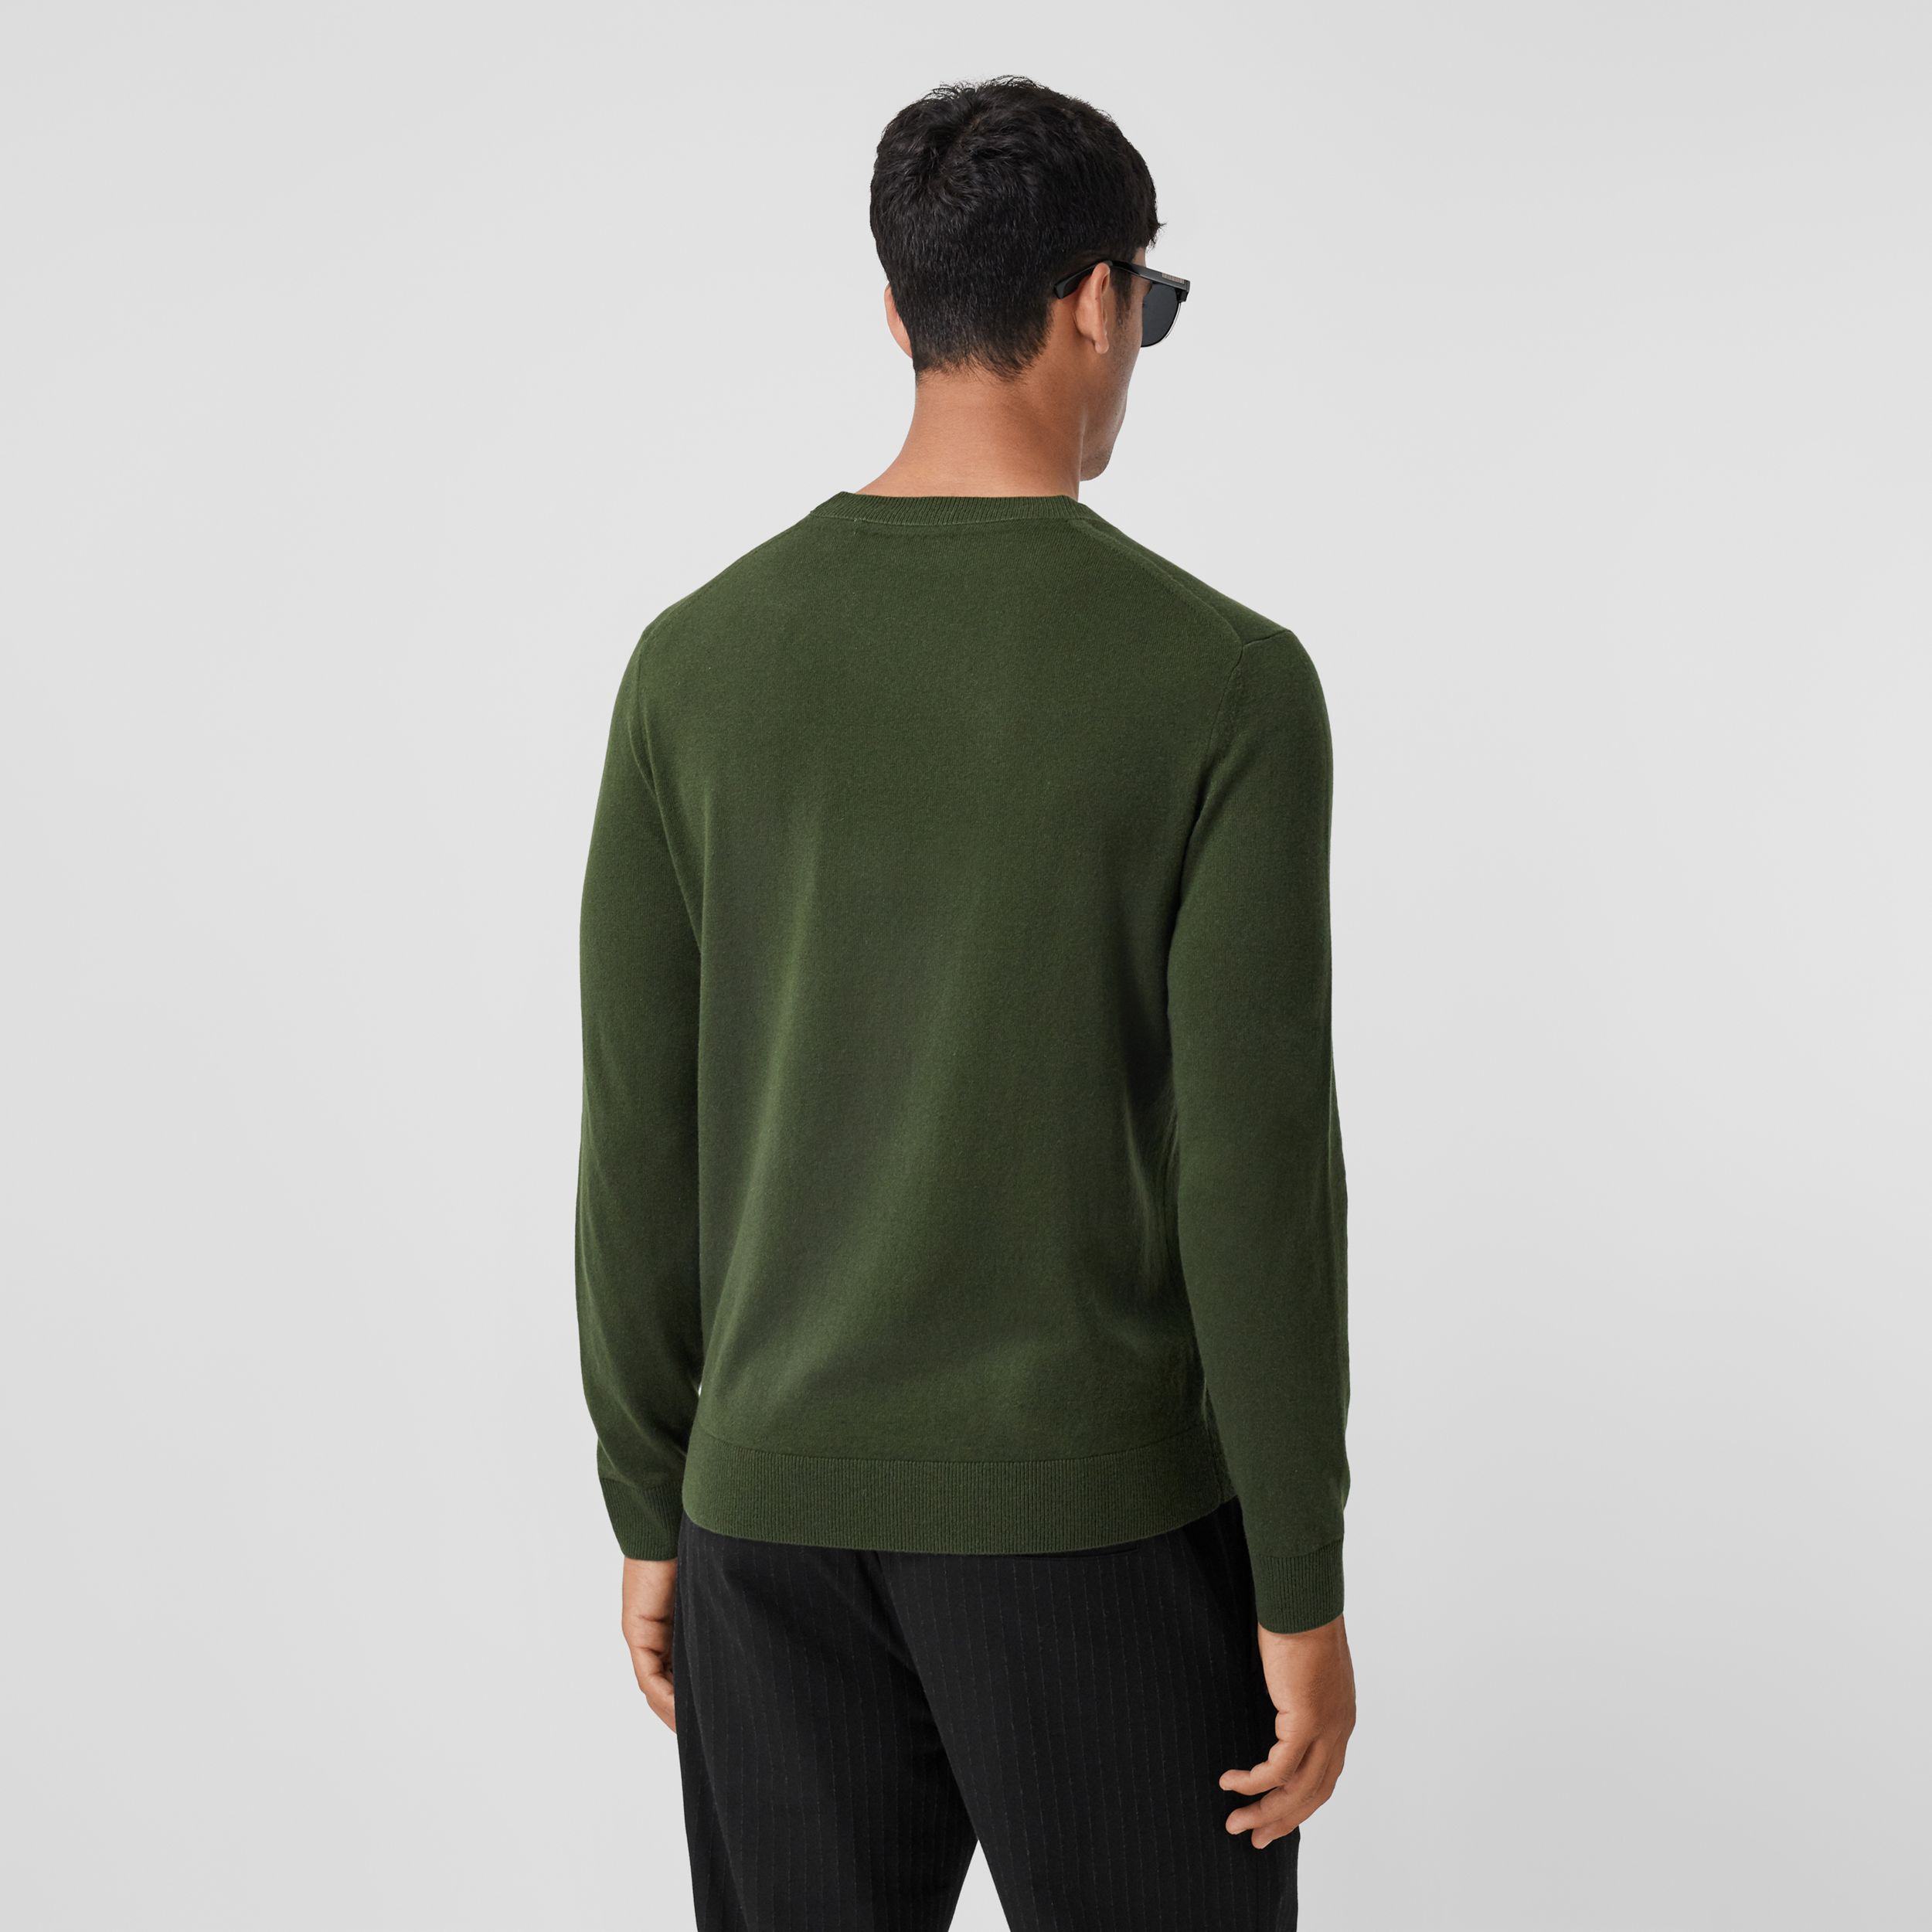 Monogram Motif Cashmere Sweater in Deep Khaki - Men | Burberry - 3